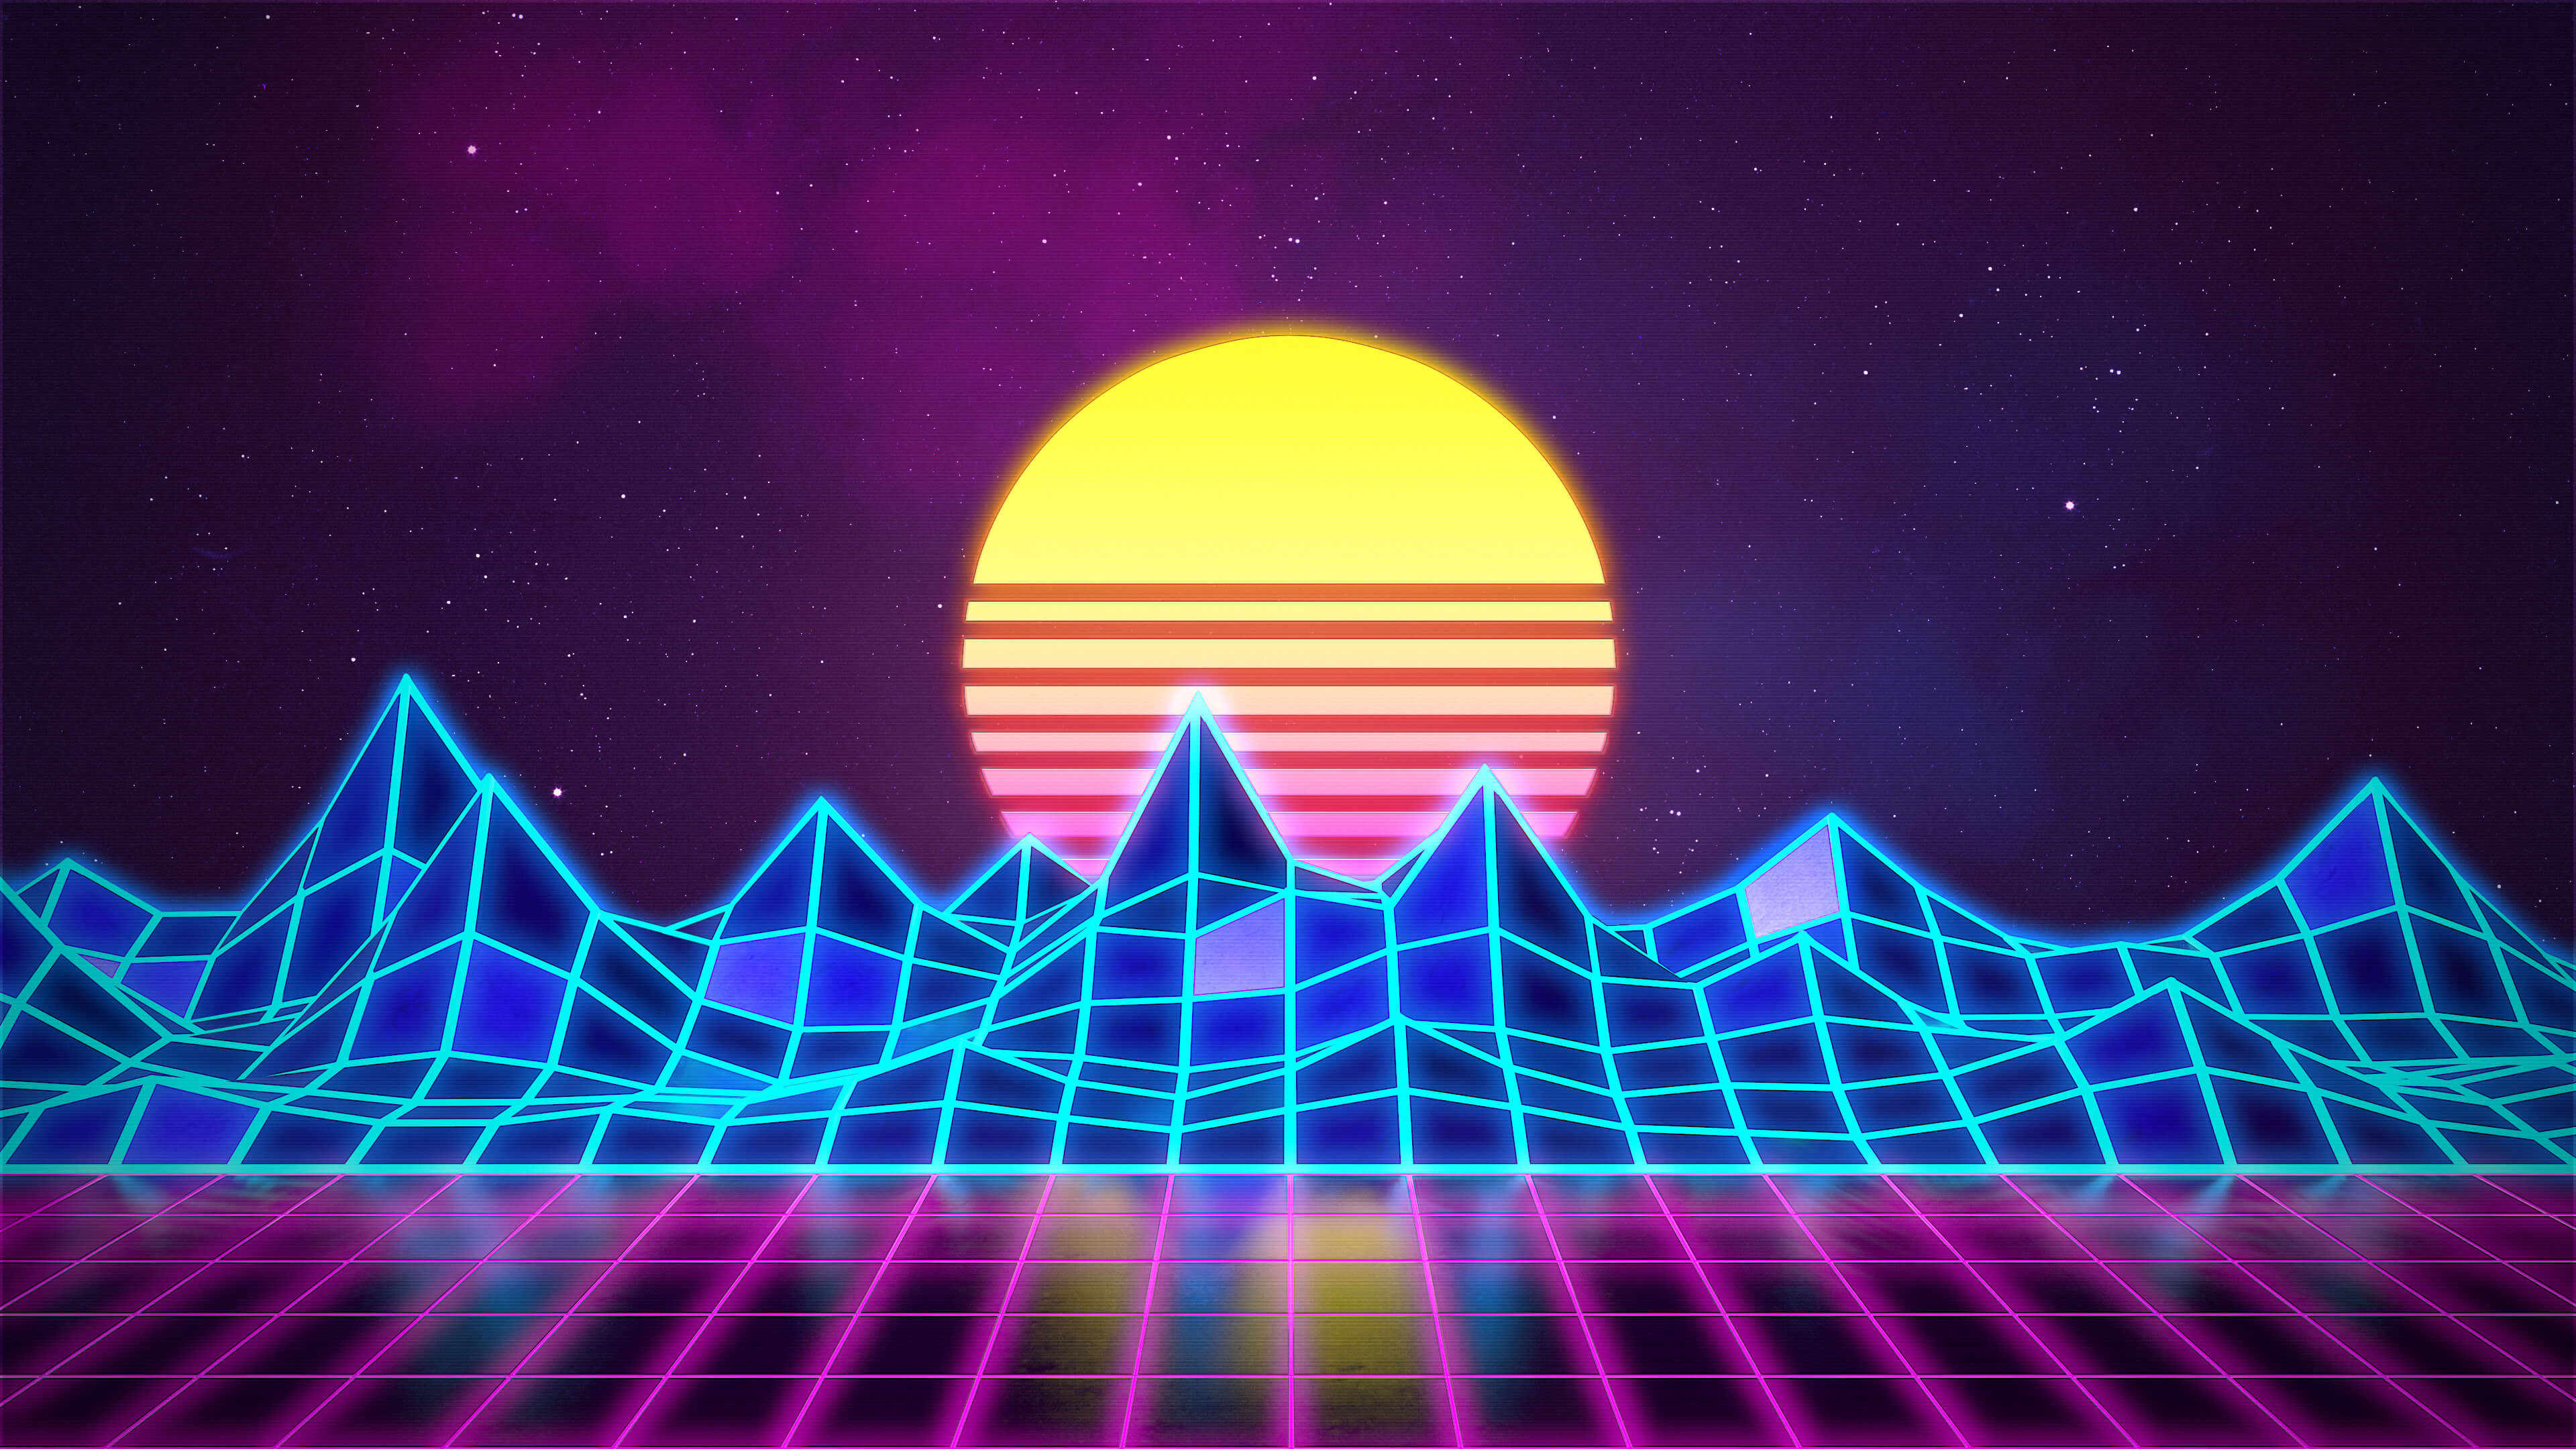 synthwave neon 80 s